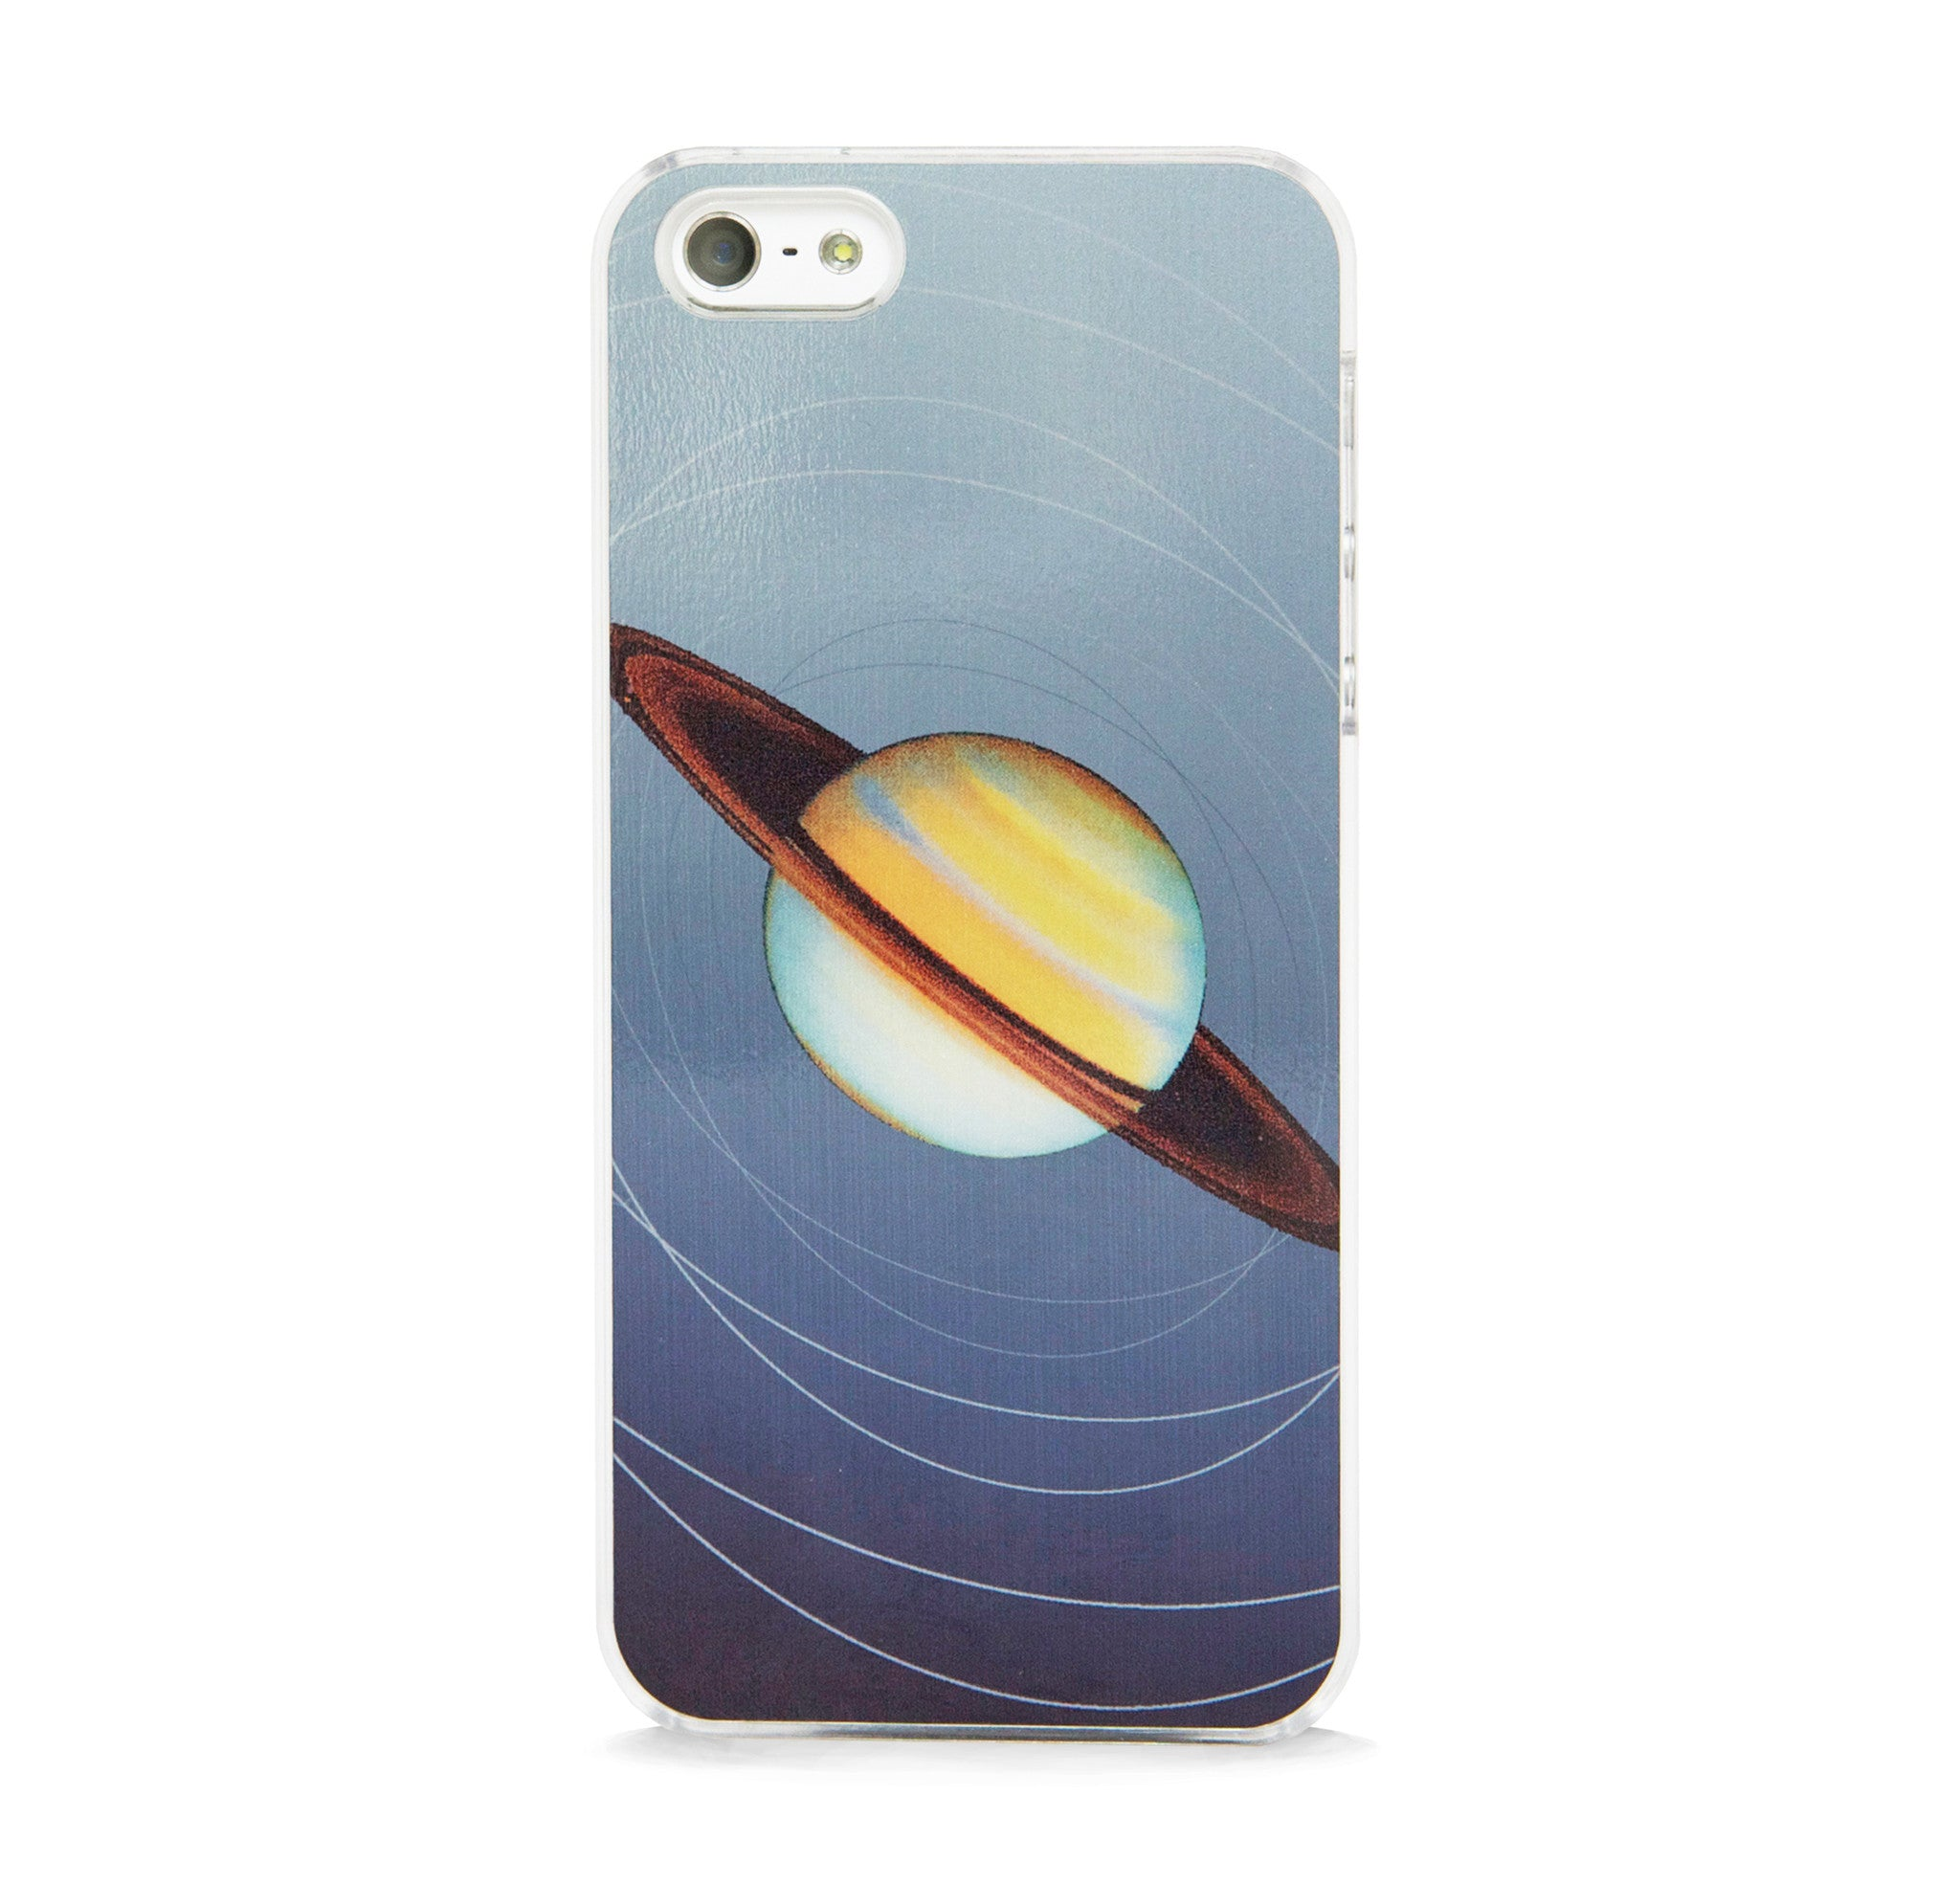 SPACE SATURN NAVY FOR IPHONE 5/5S, IPHONE SE